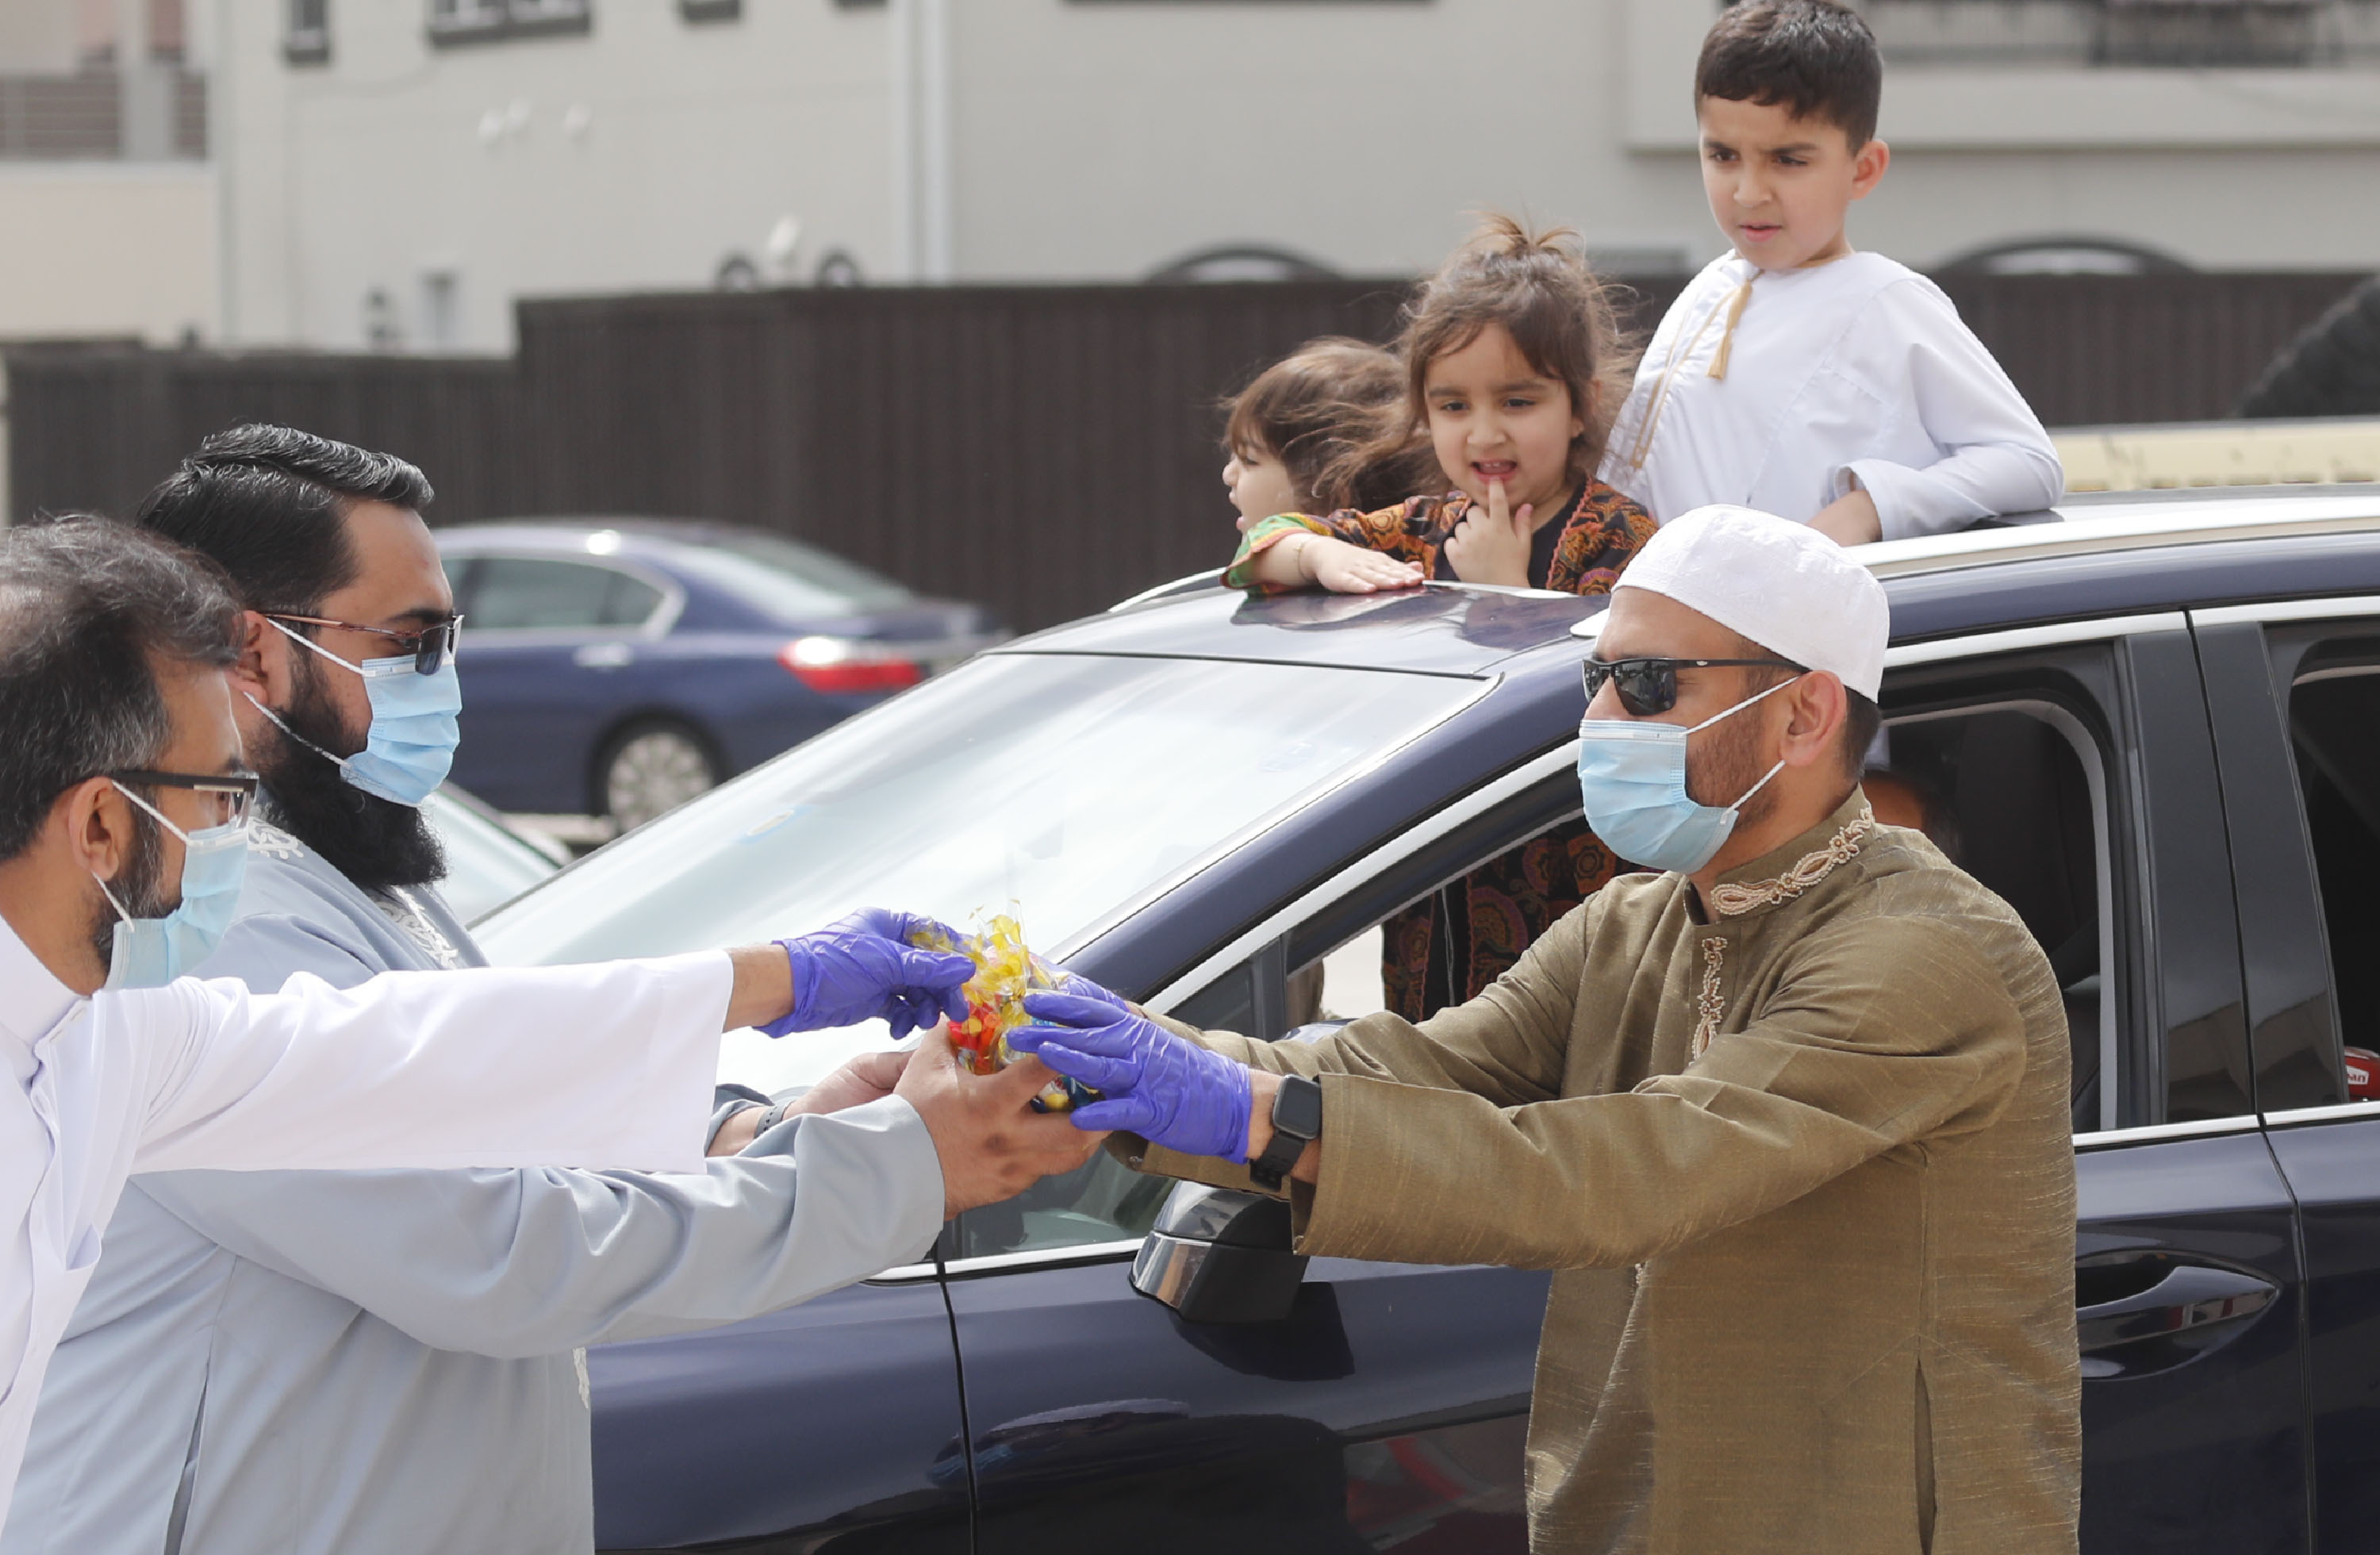 Children look on from a sunroof as organizers prepared to give them candy during an Eid al-Fitr drive through celebration outside a closed mosque in Plano, Texas, Sunday, May 24, 2020. Many Muslims in America are navigating balancing religious and social rituals with concerns over the virus as they look for ways to capture the Eid spirit this weekend.